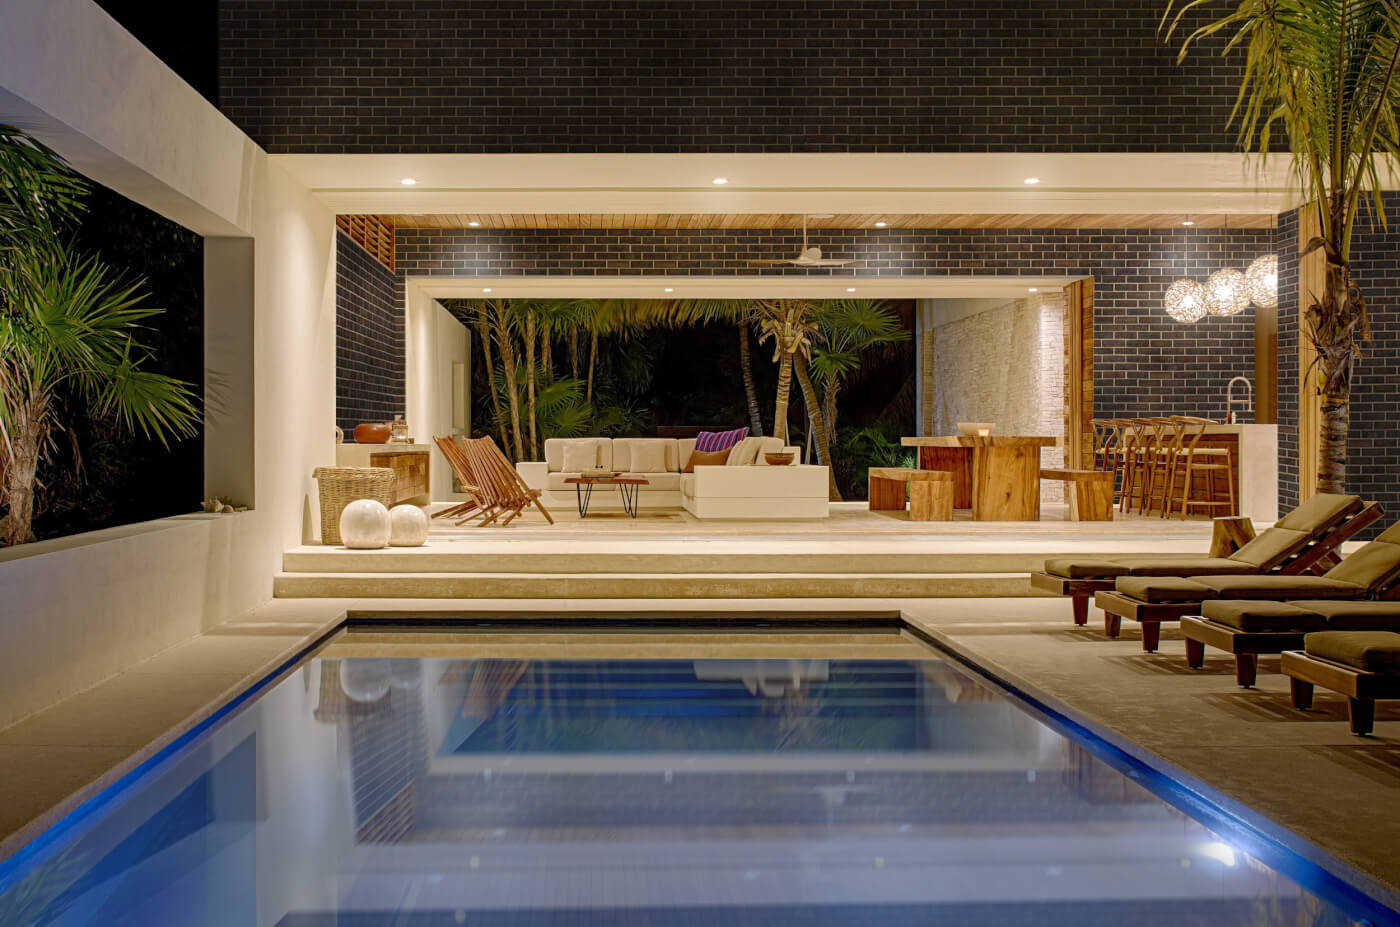 Coachhouse Brick home with indoor pool